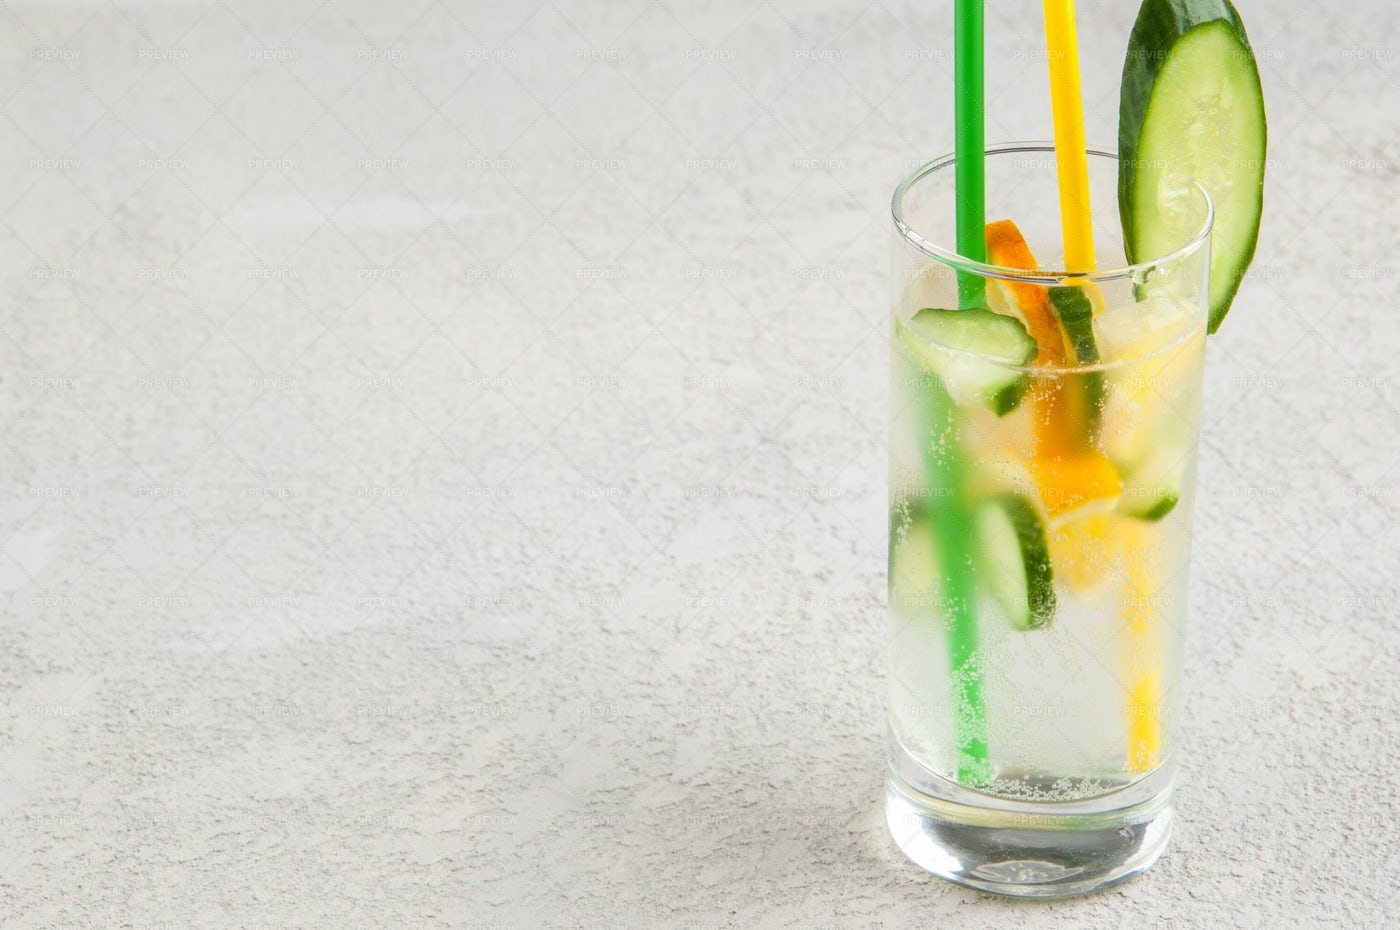 Fresh Beverage In A Glass: Stock Photos